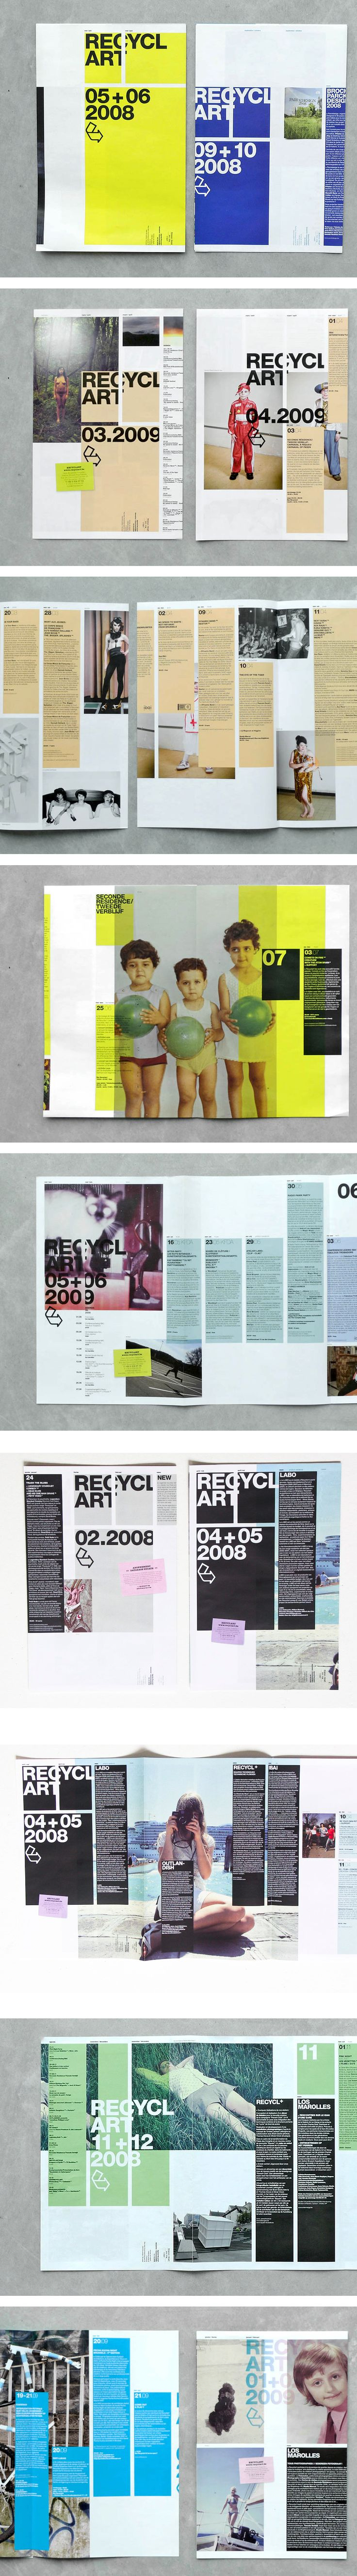 Recyclart 2009 design and layout more on…